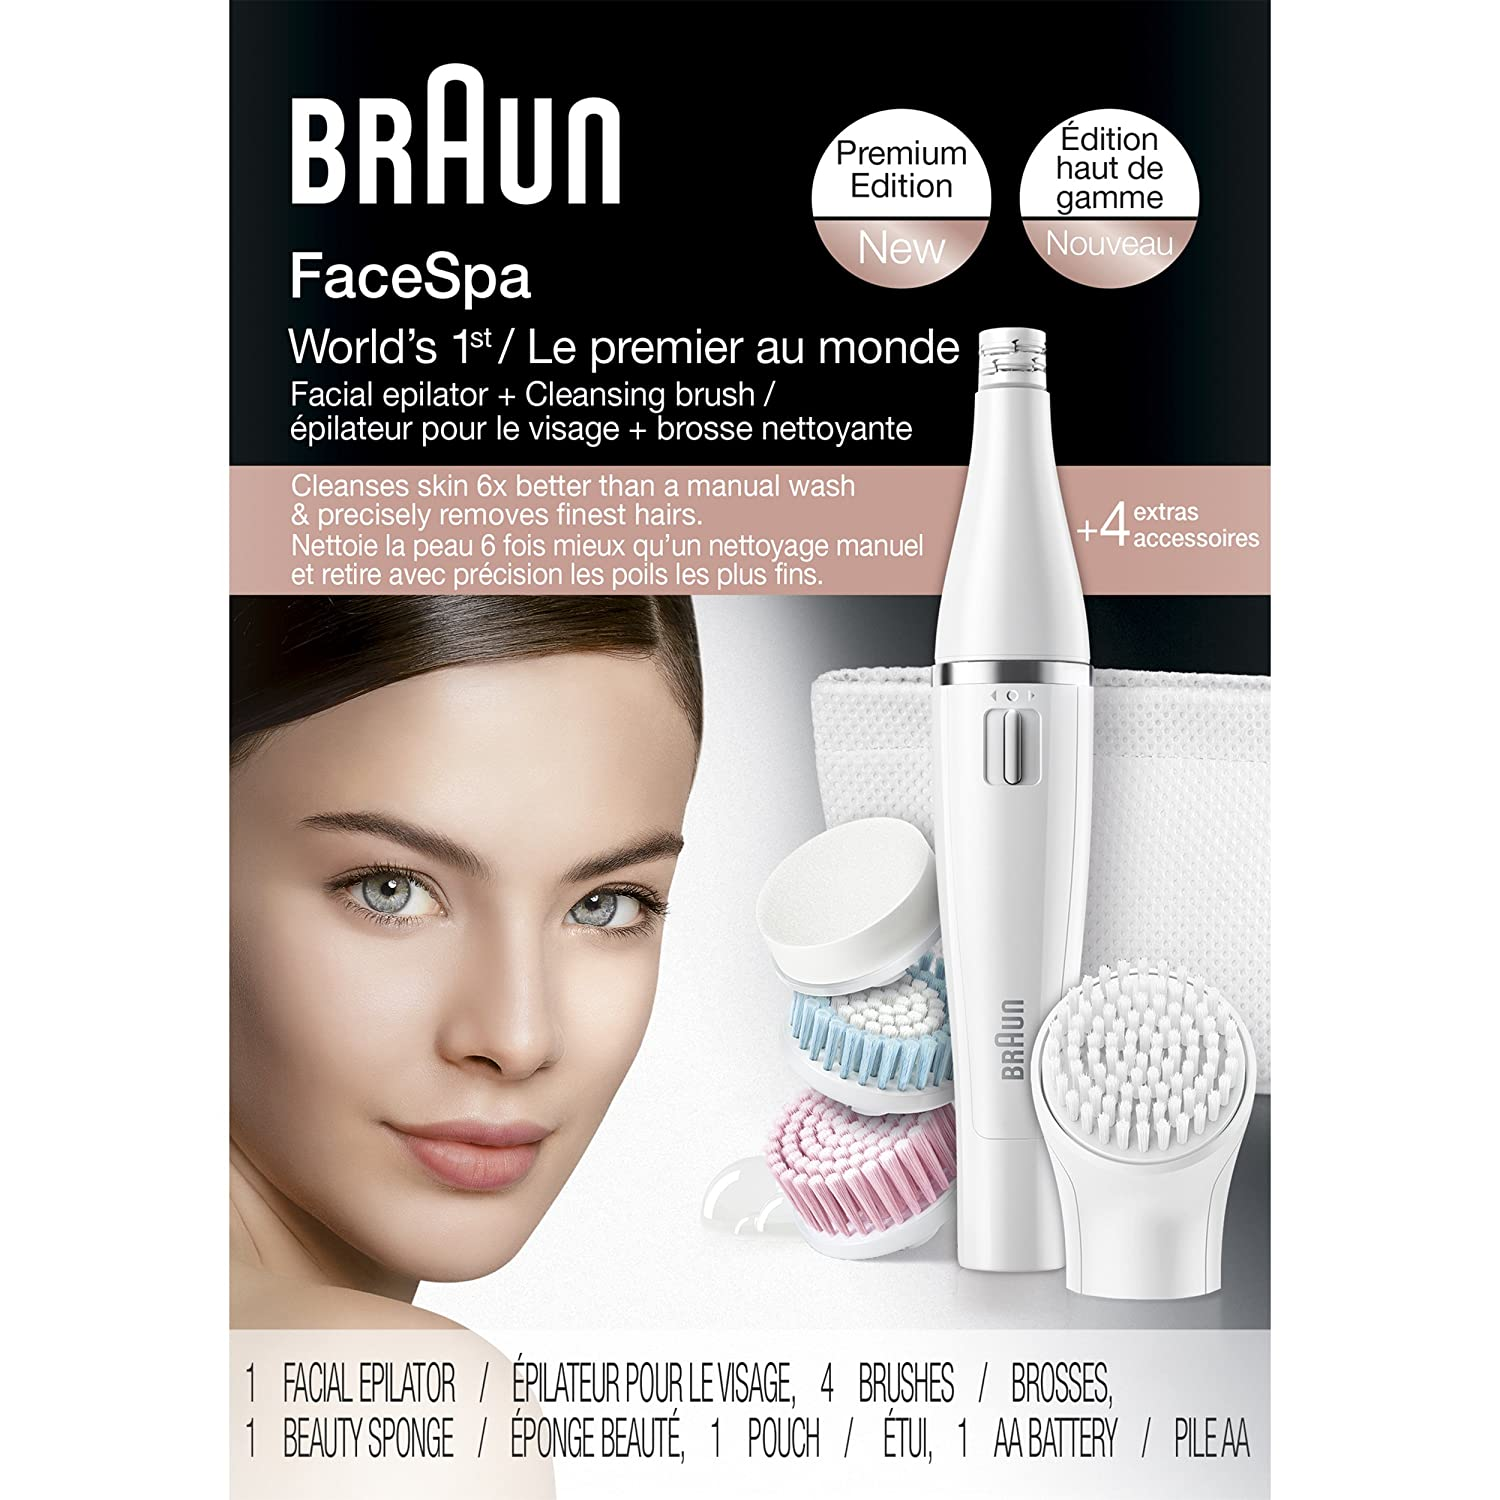 Braun Face 851 Women's Miniature Epilator, Electric Hair Removal, with 4 Facial Cleansing Brushes and Beauty Pouch SE851